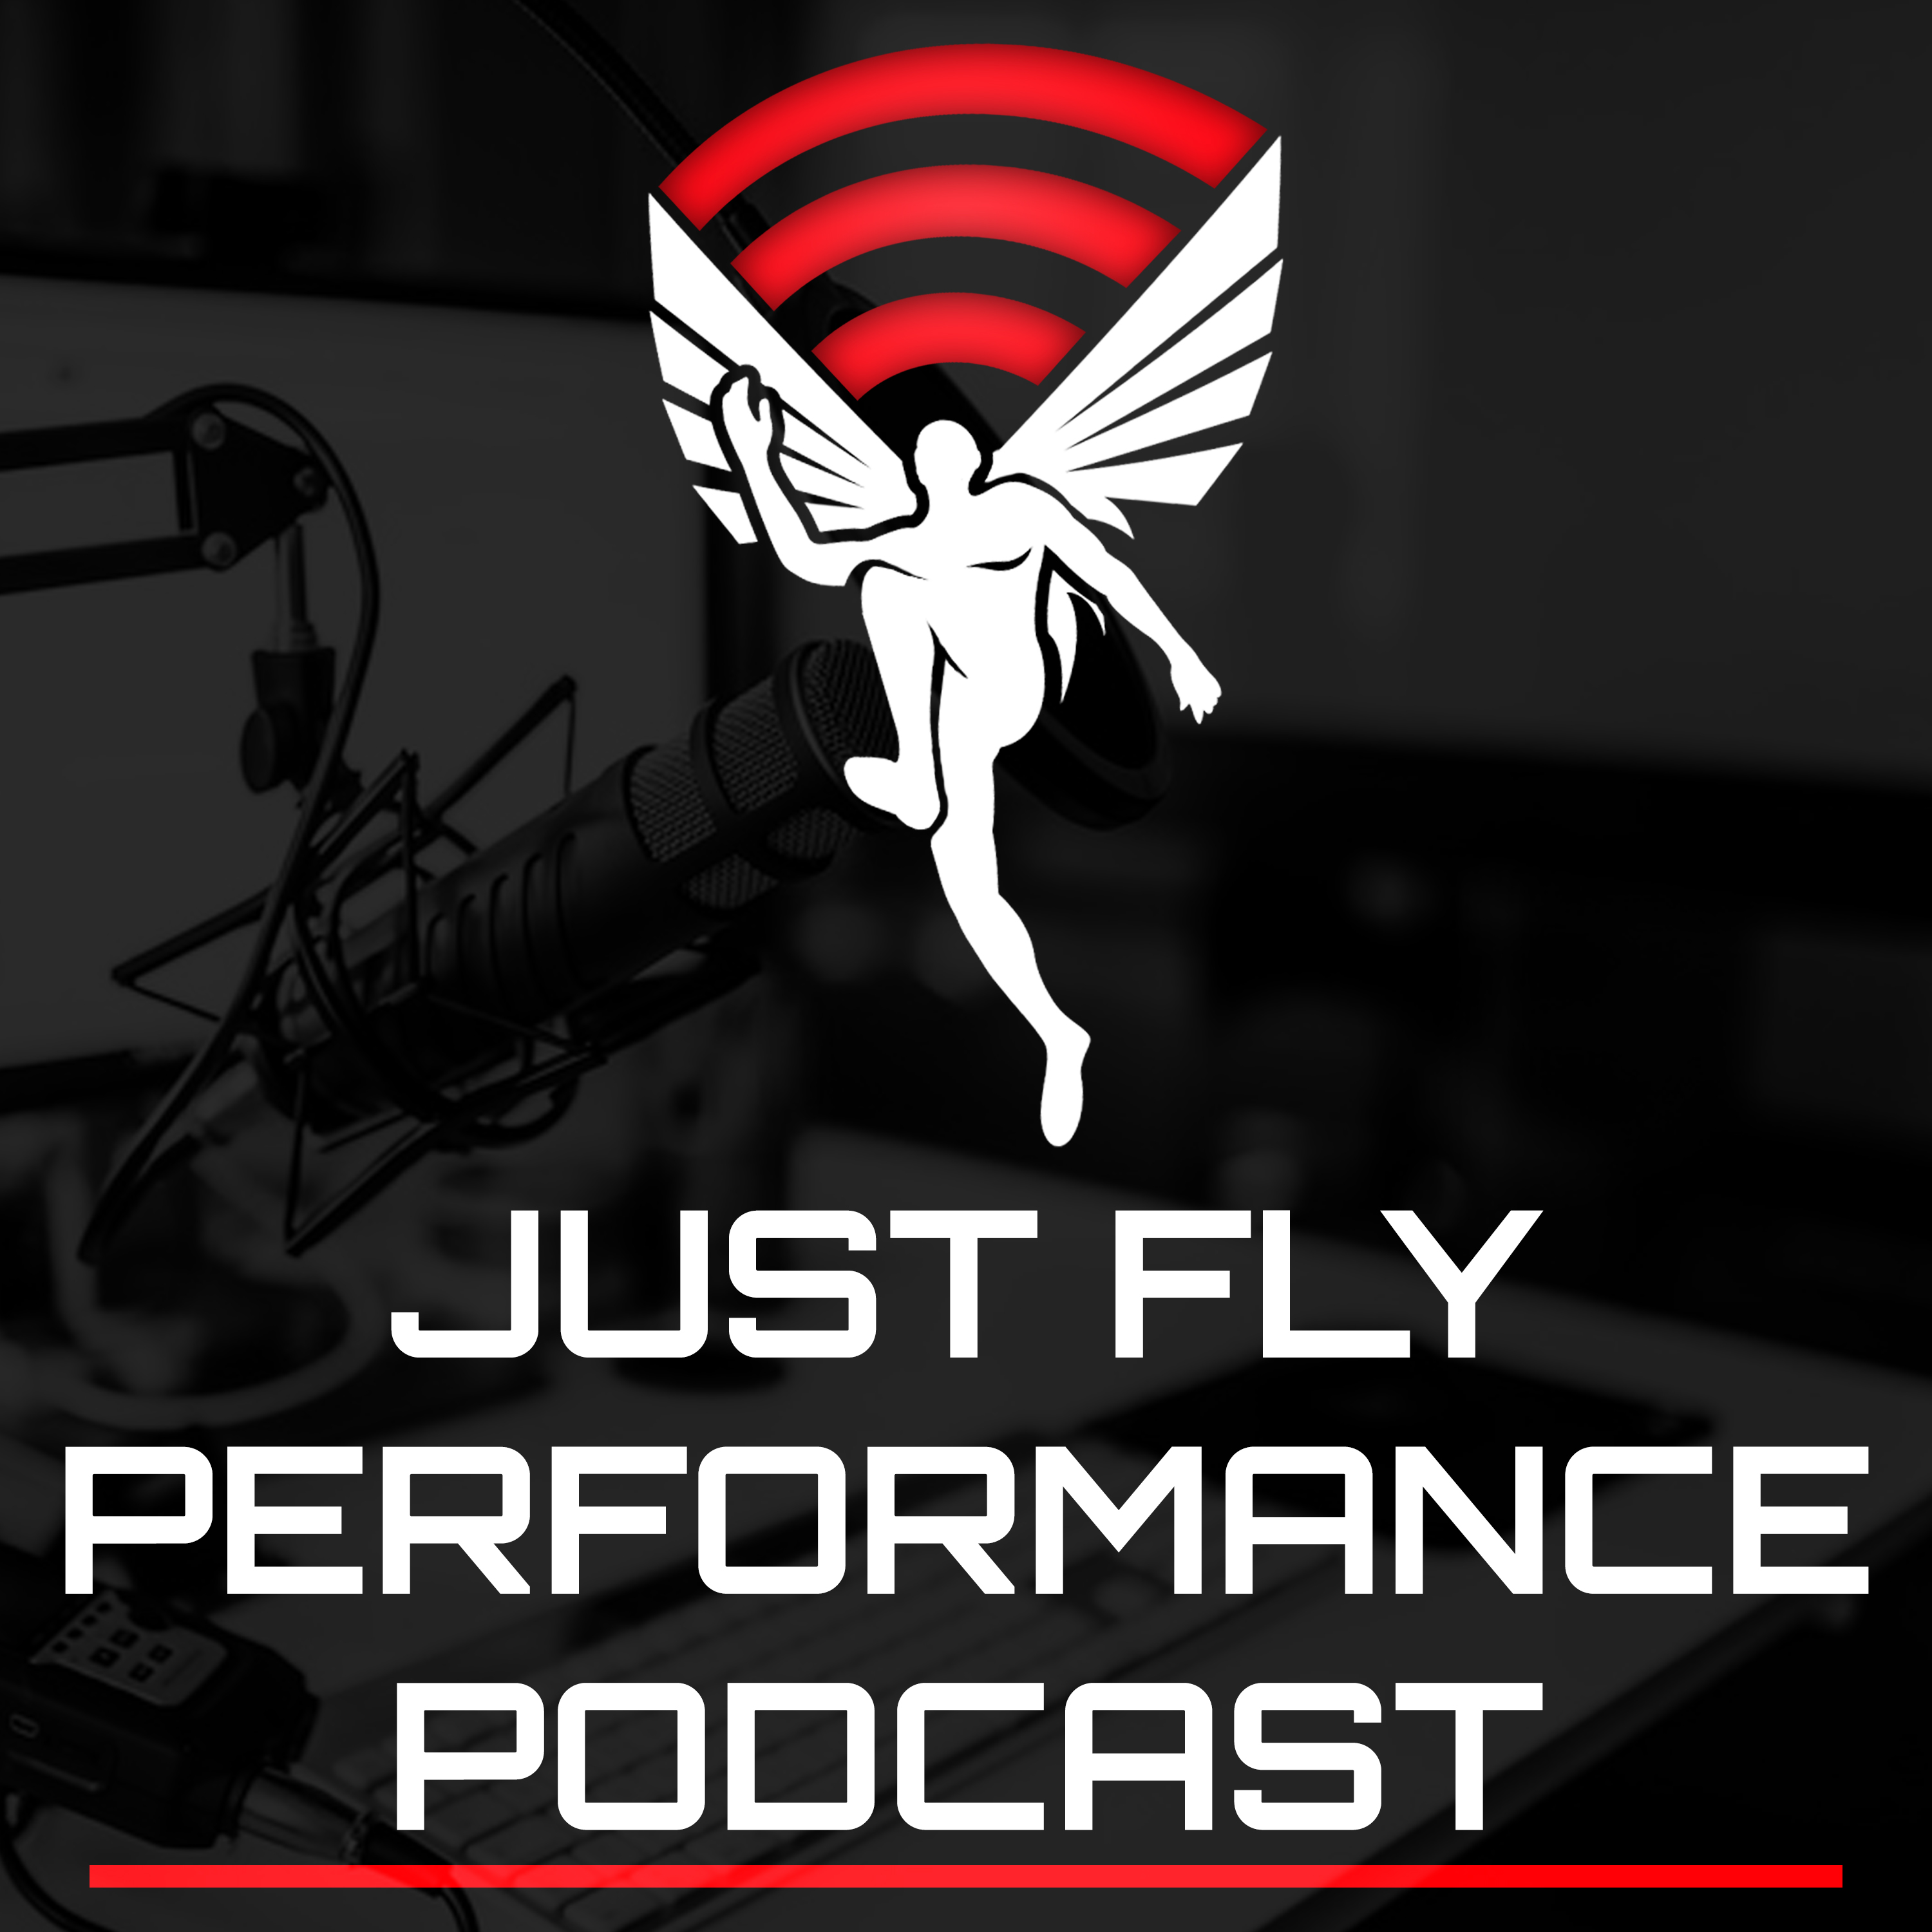 A highlight from 270: James Baker on Strength, Plyometrics, and Movement Variety in the Process of Long-Term Athletic Development